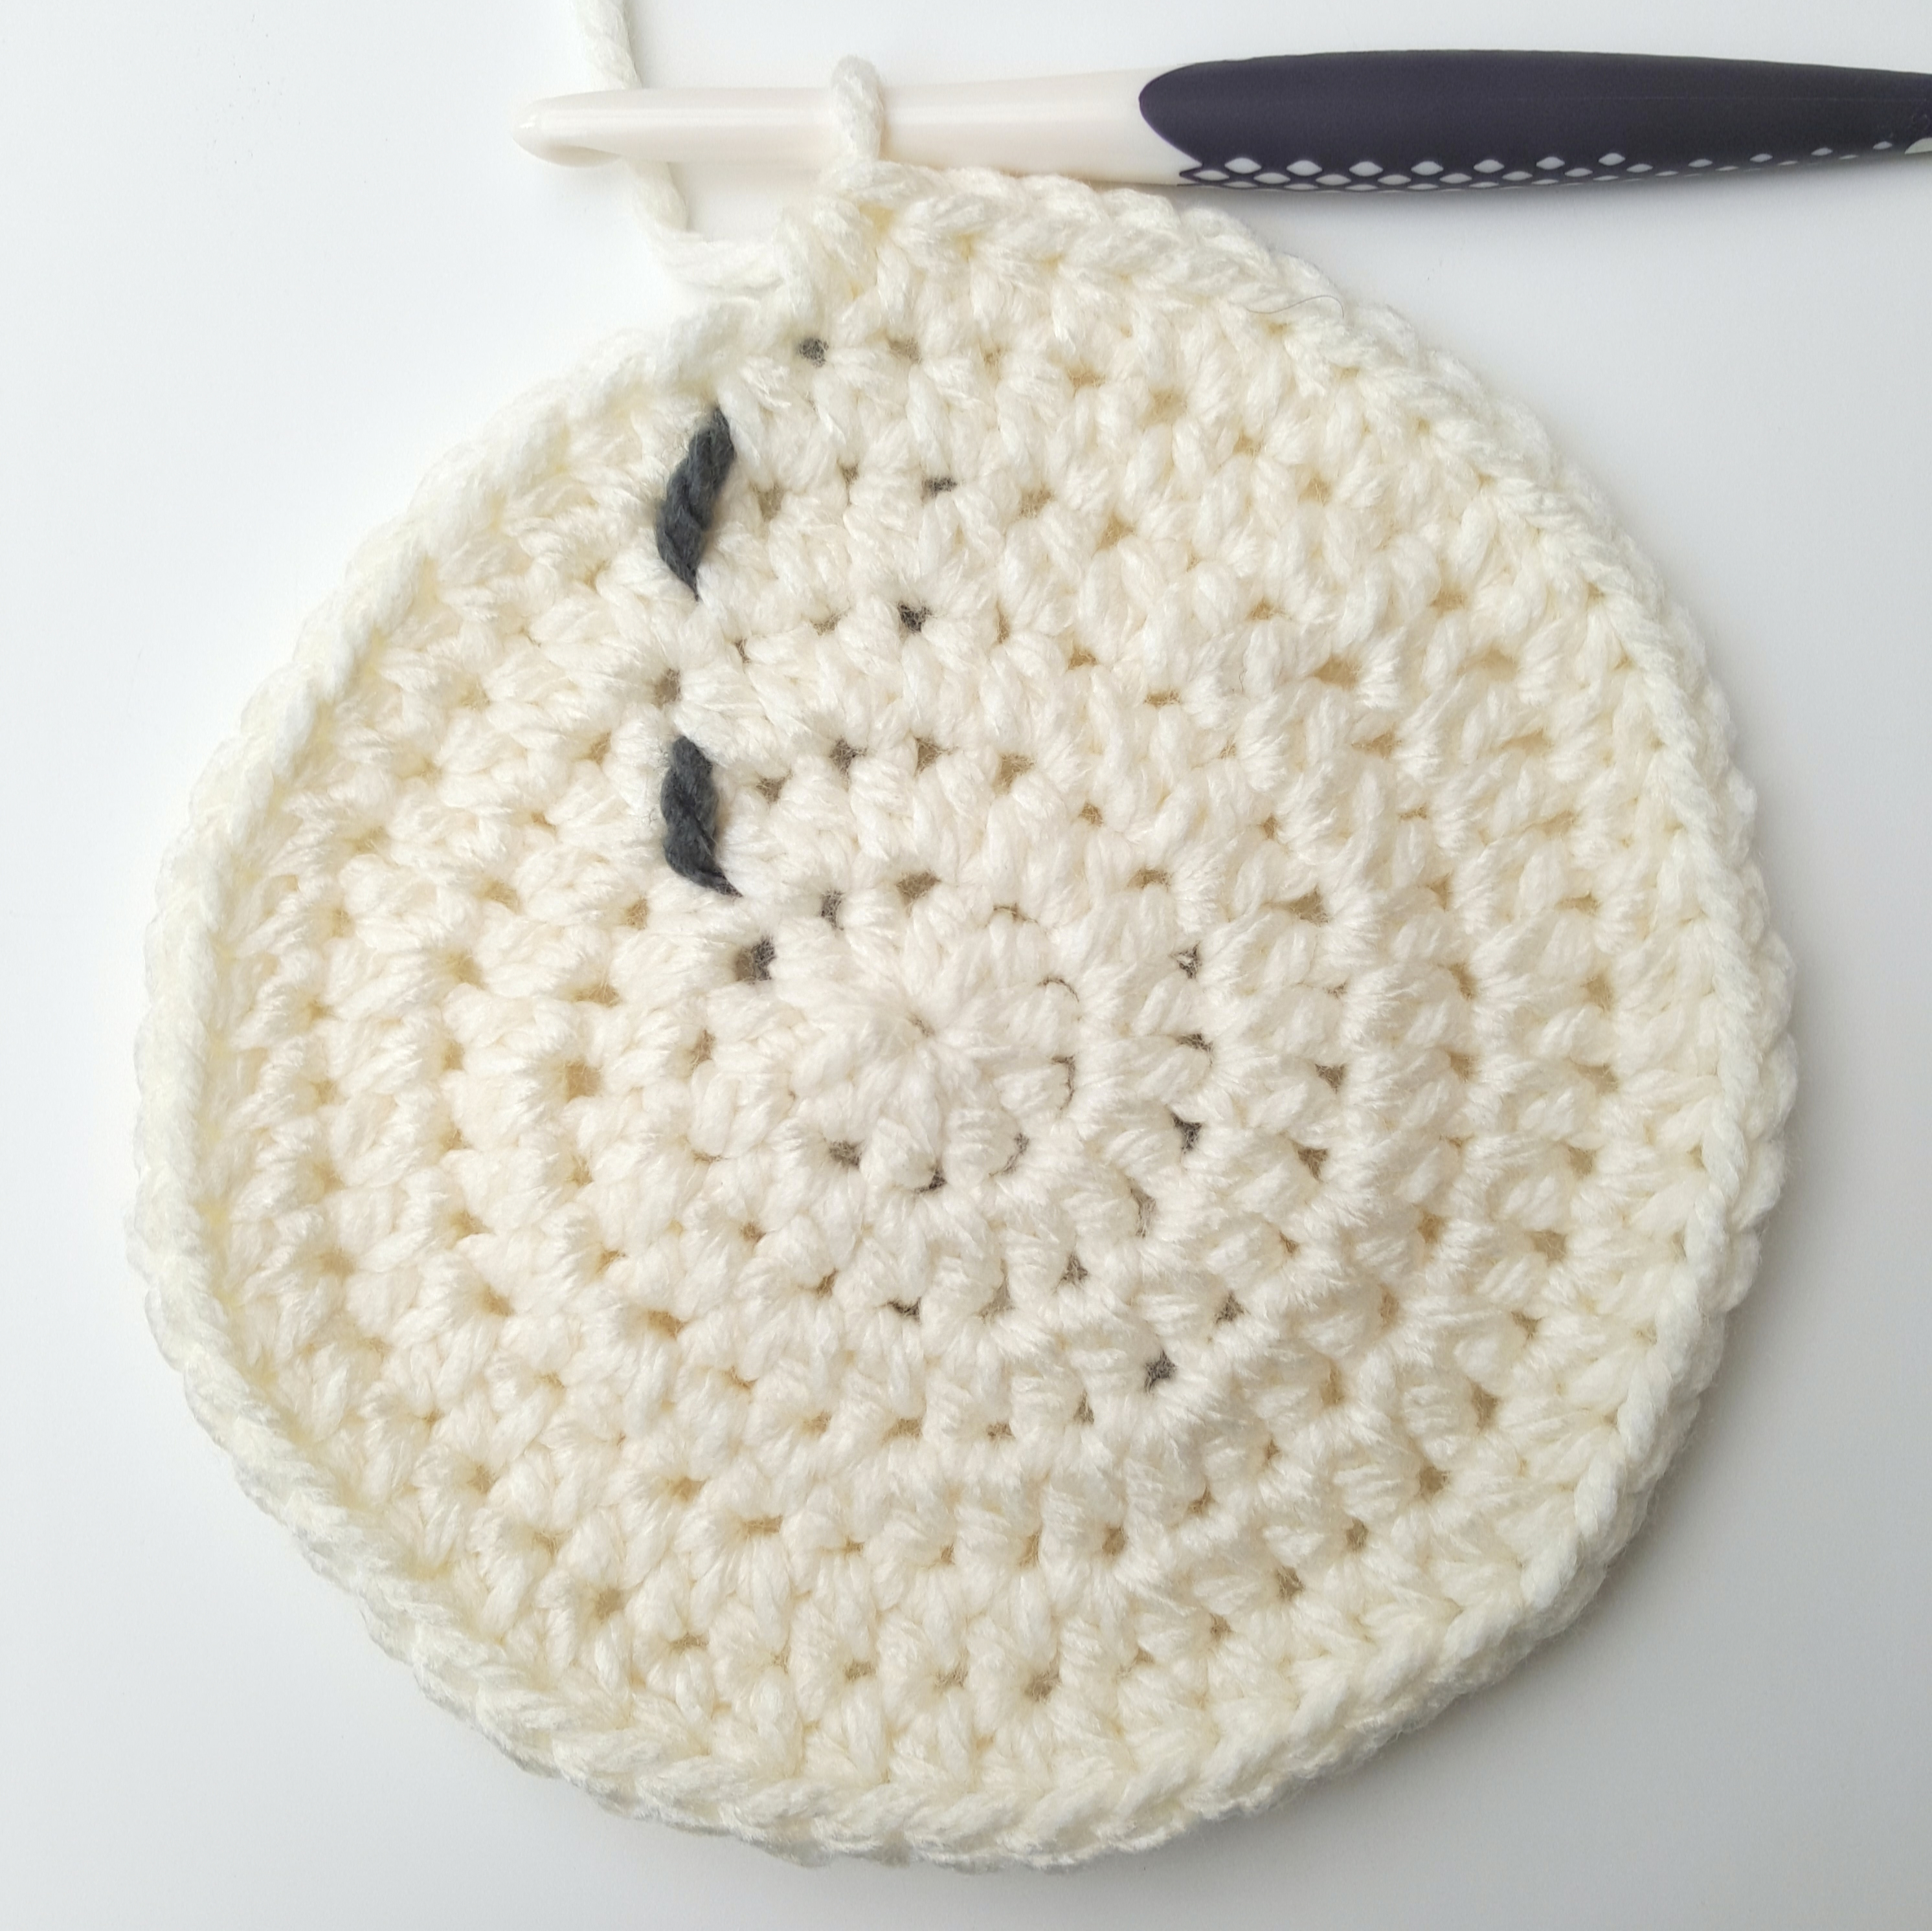 Crochet a flat circle for the base of your basket